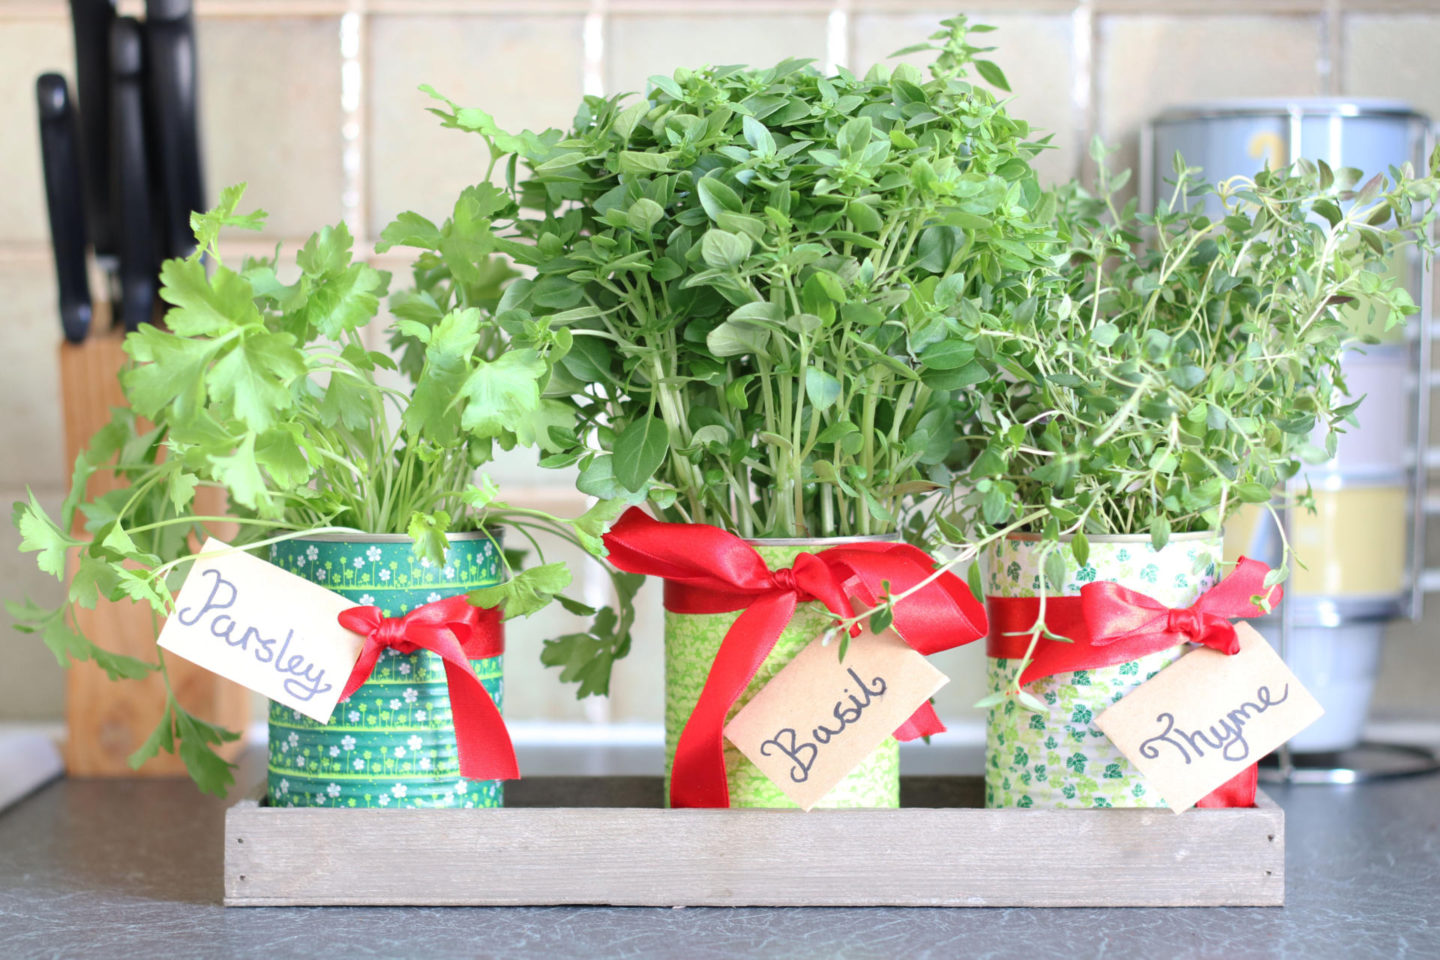 Herb Pot DIY - 3 Simple Upcycling Projects for British Flower Week. From Metal Cans to Herb Garden